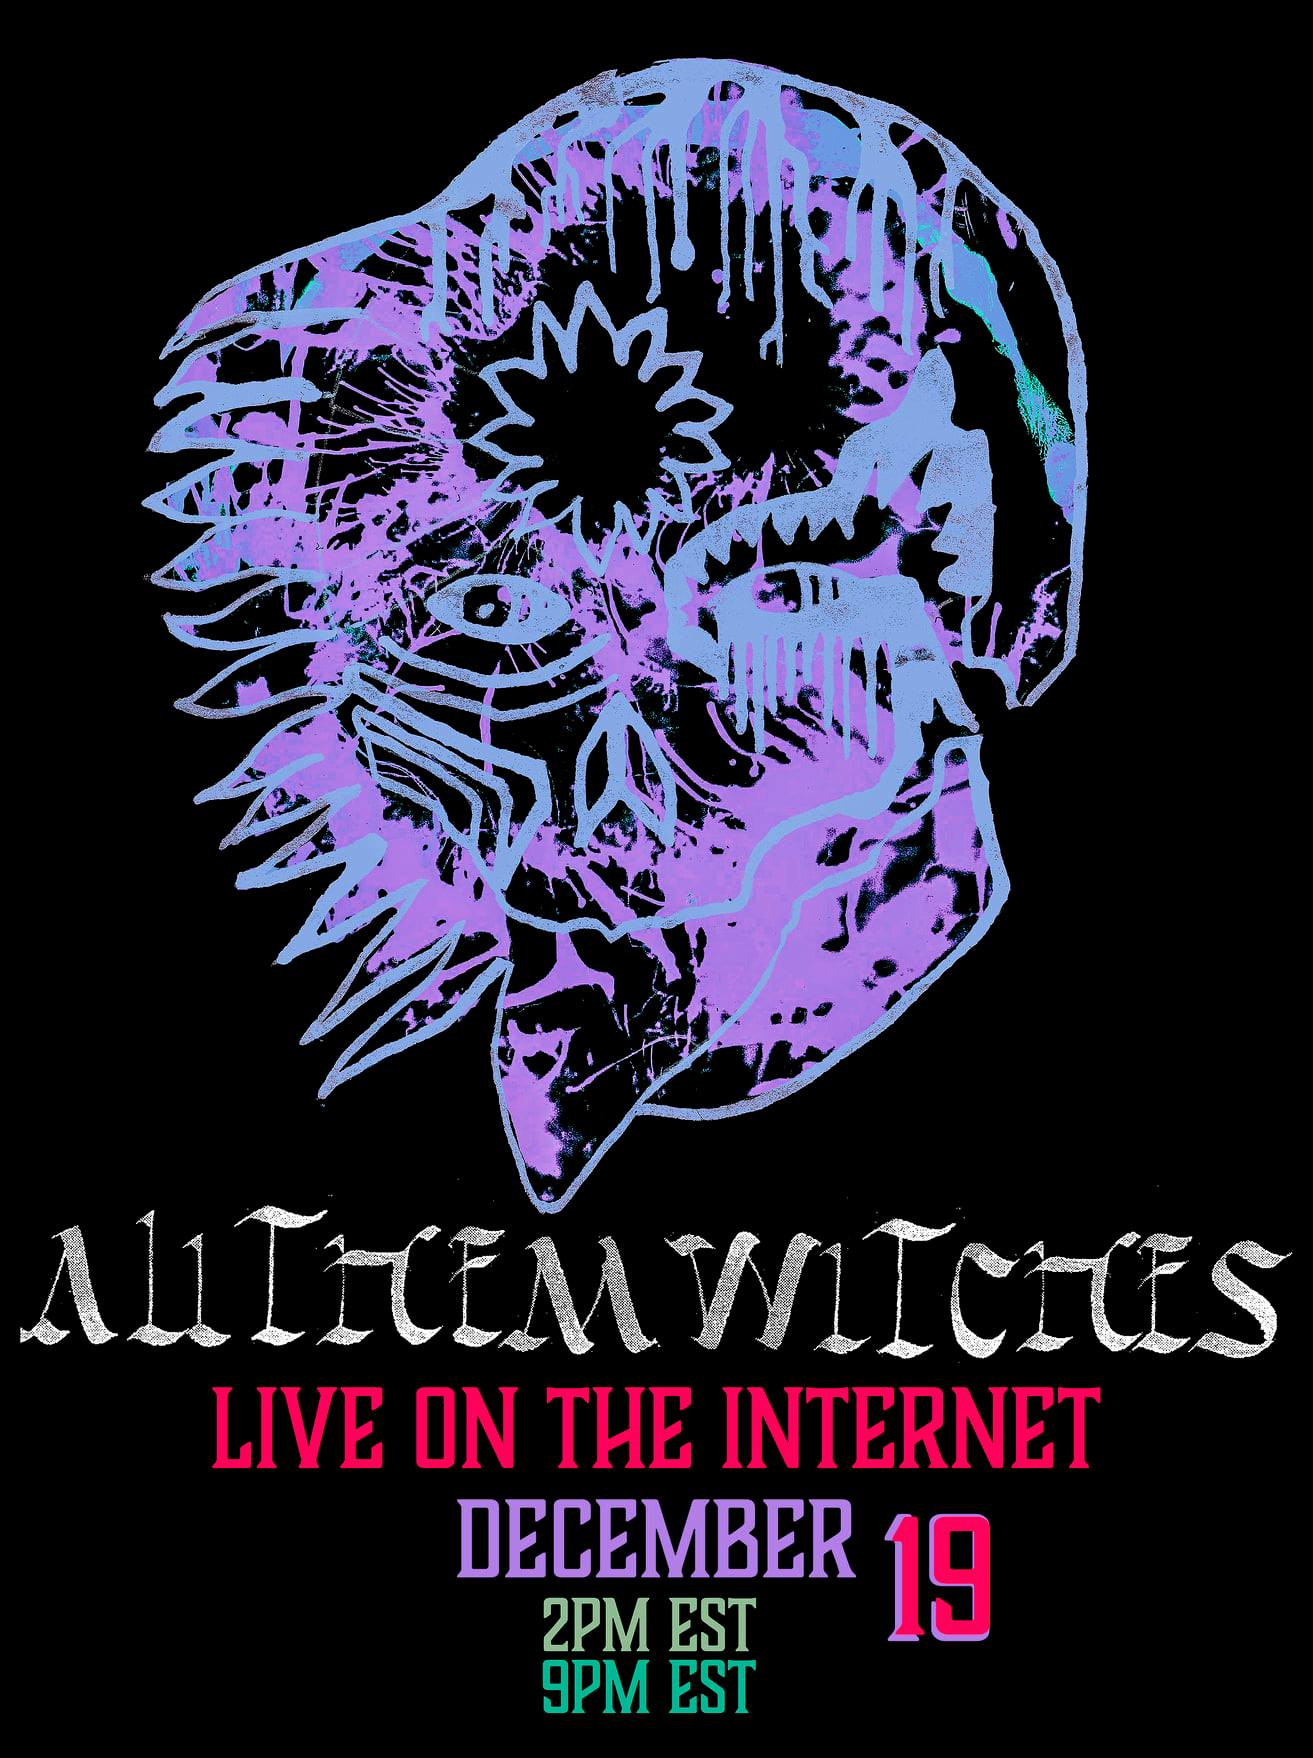 all them witches live on the internet poster